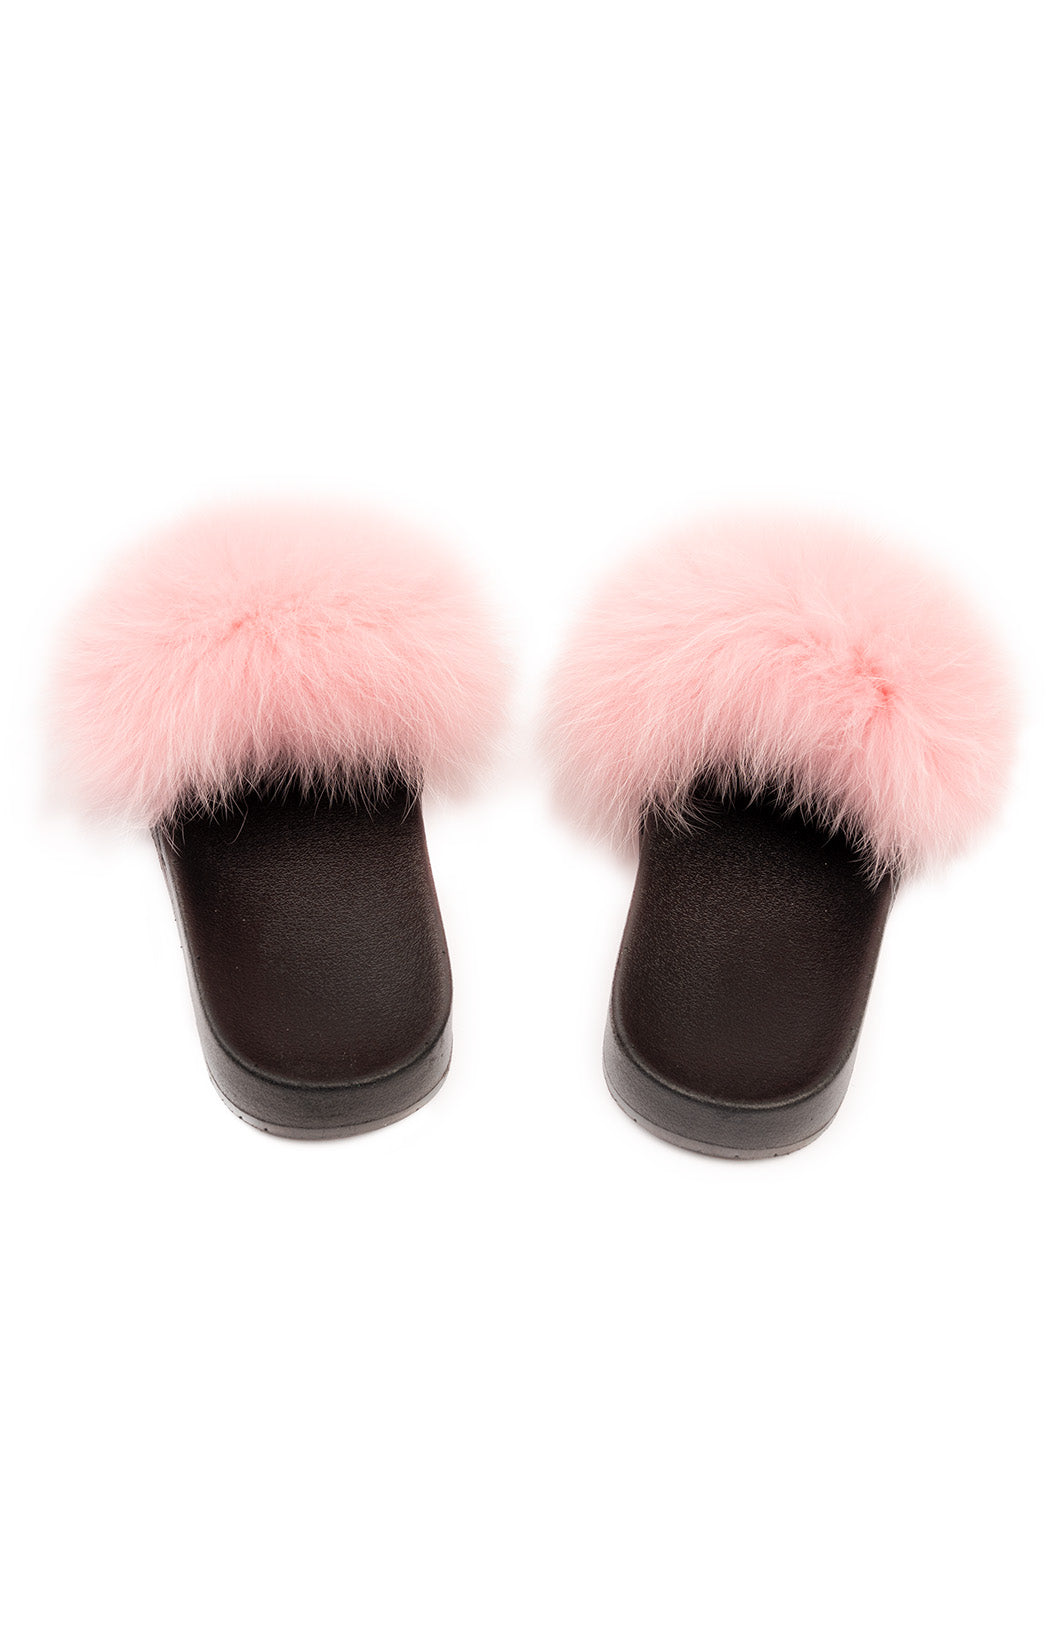 Pink faux fur Slides with black rubber bottom